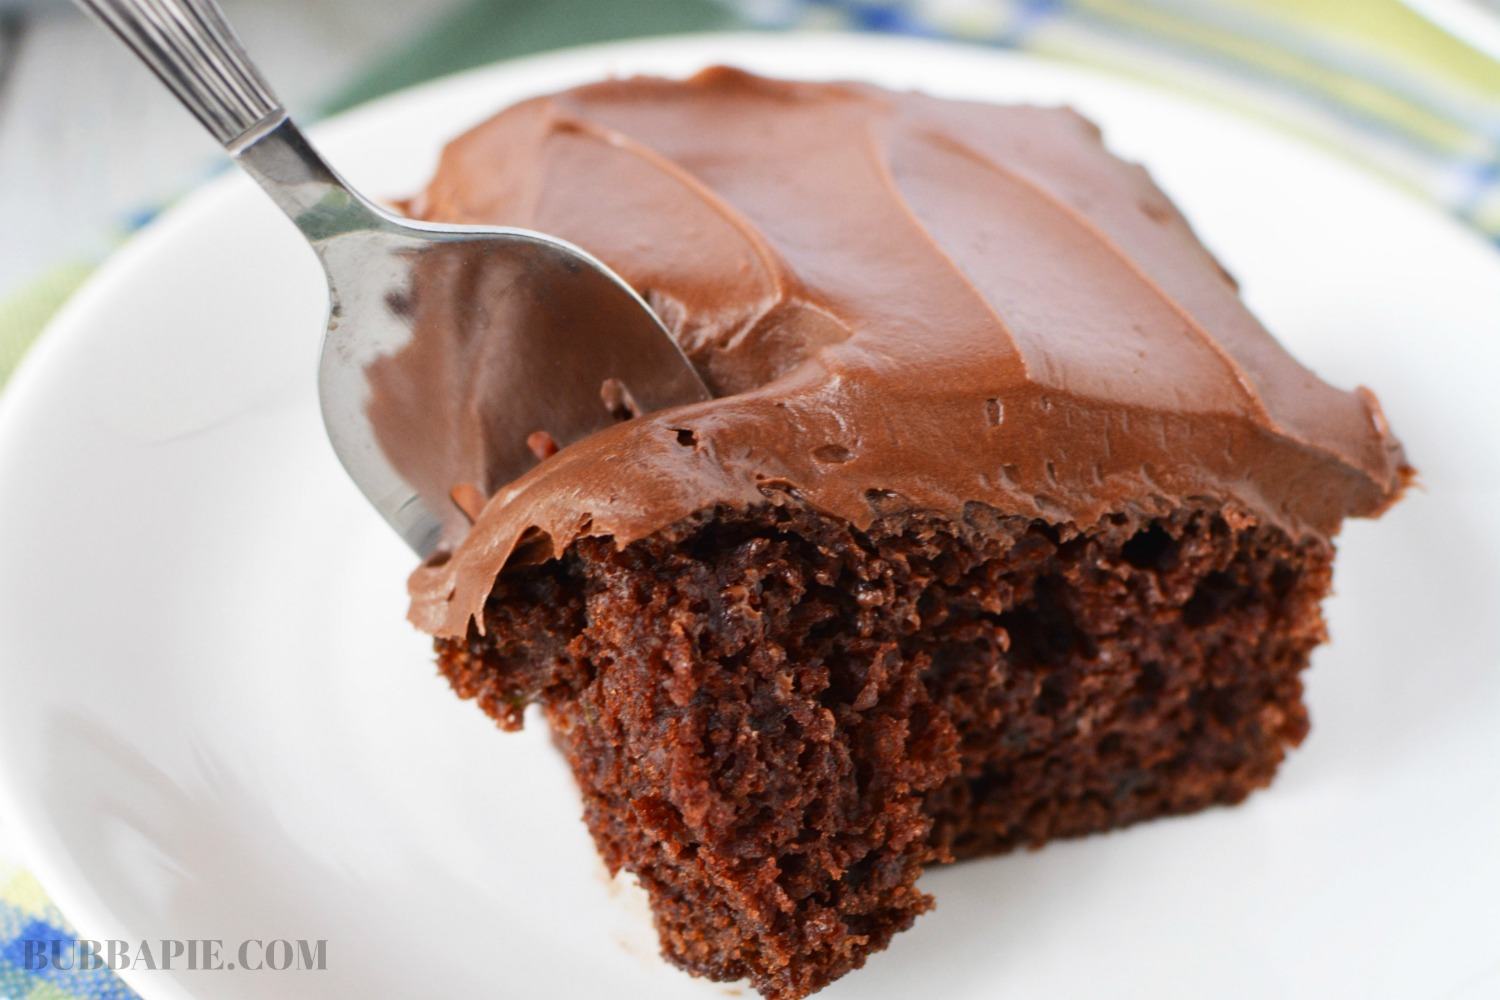 Chocolate Zucchini Cake Recipe is made with shredded vegetables and greek yogurt for a very moist cake.